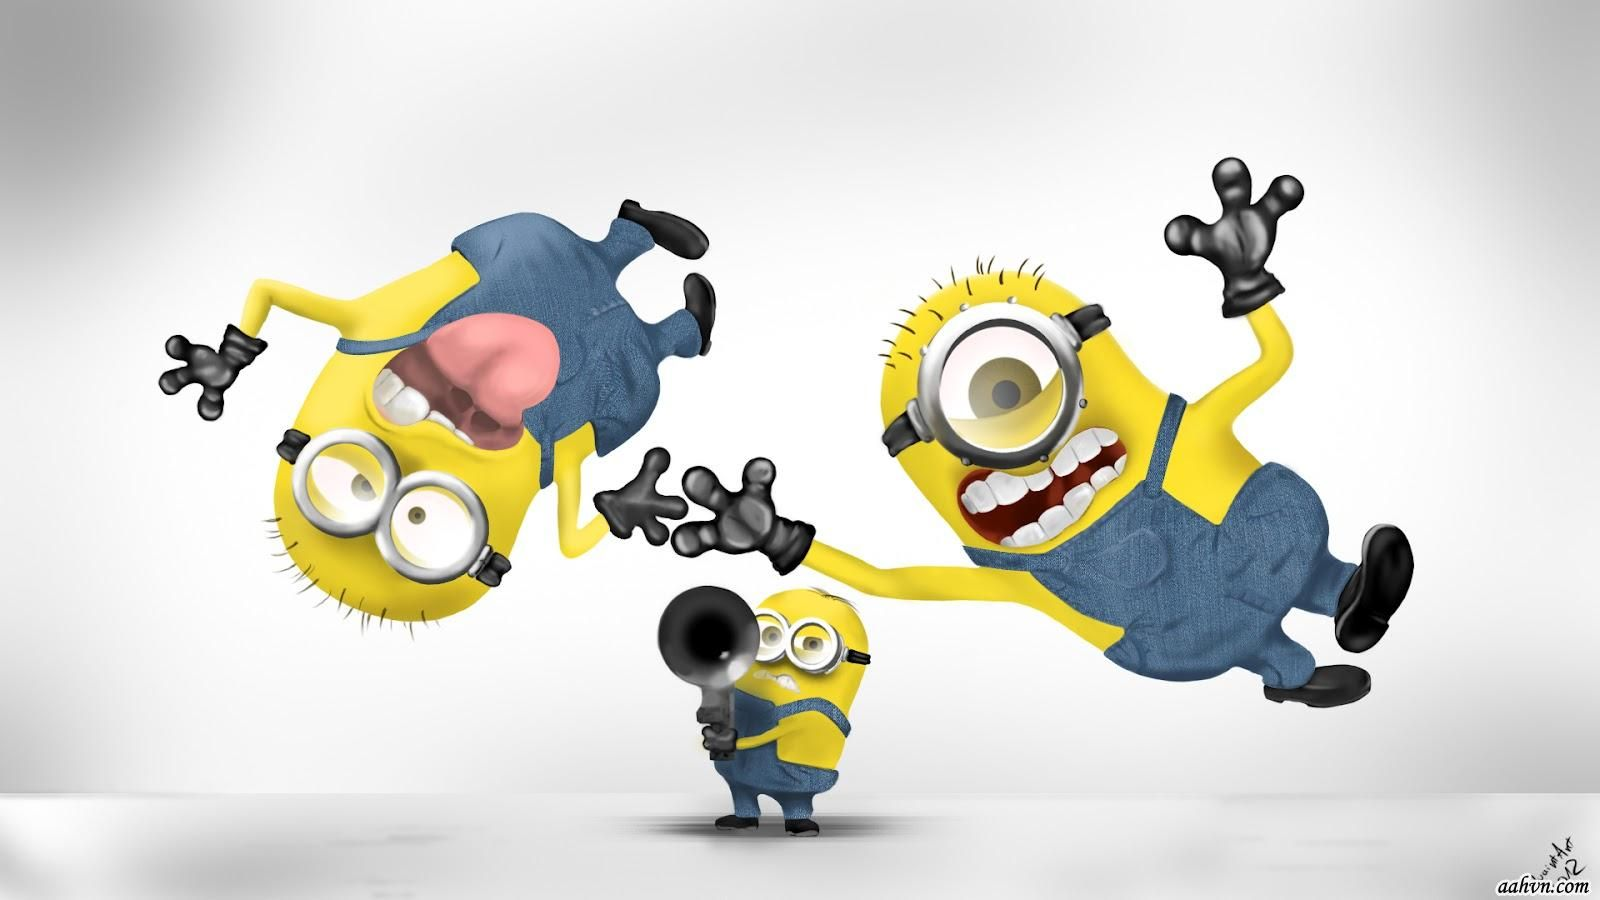 free minion wallpaper for ipad - wallpapersafari